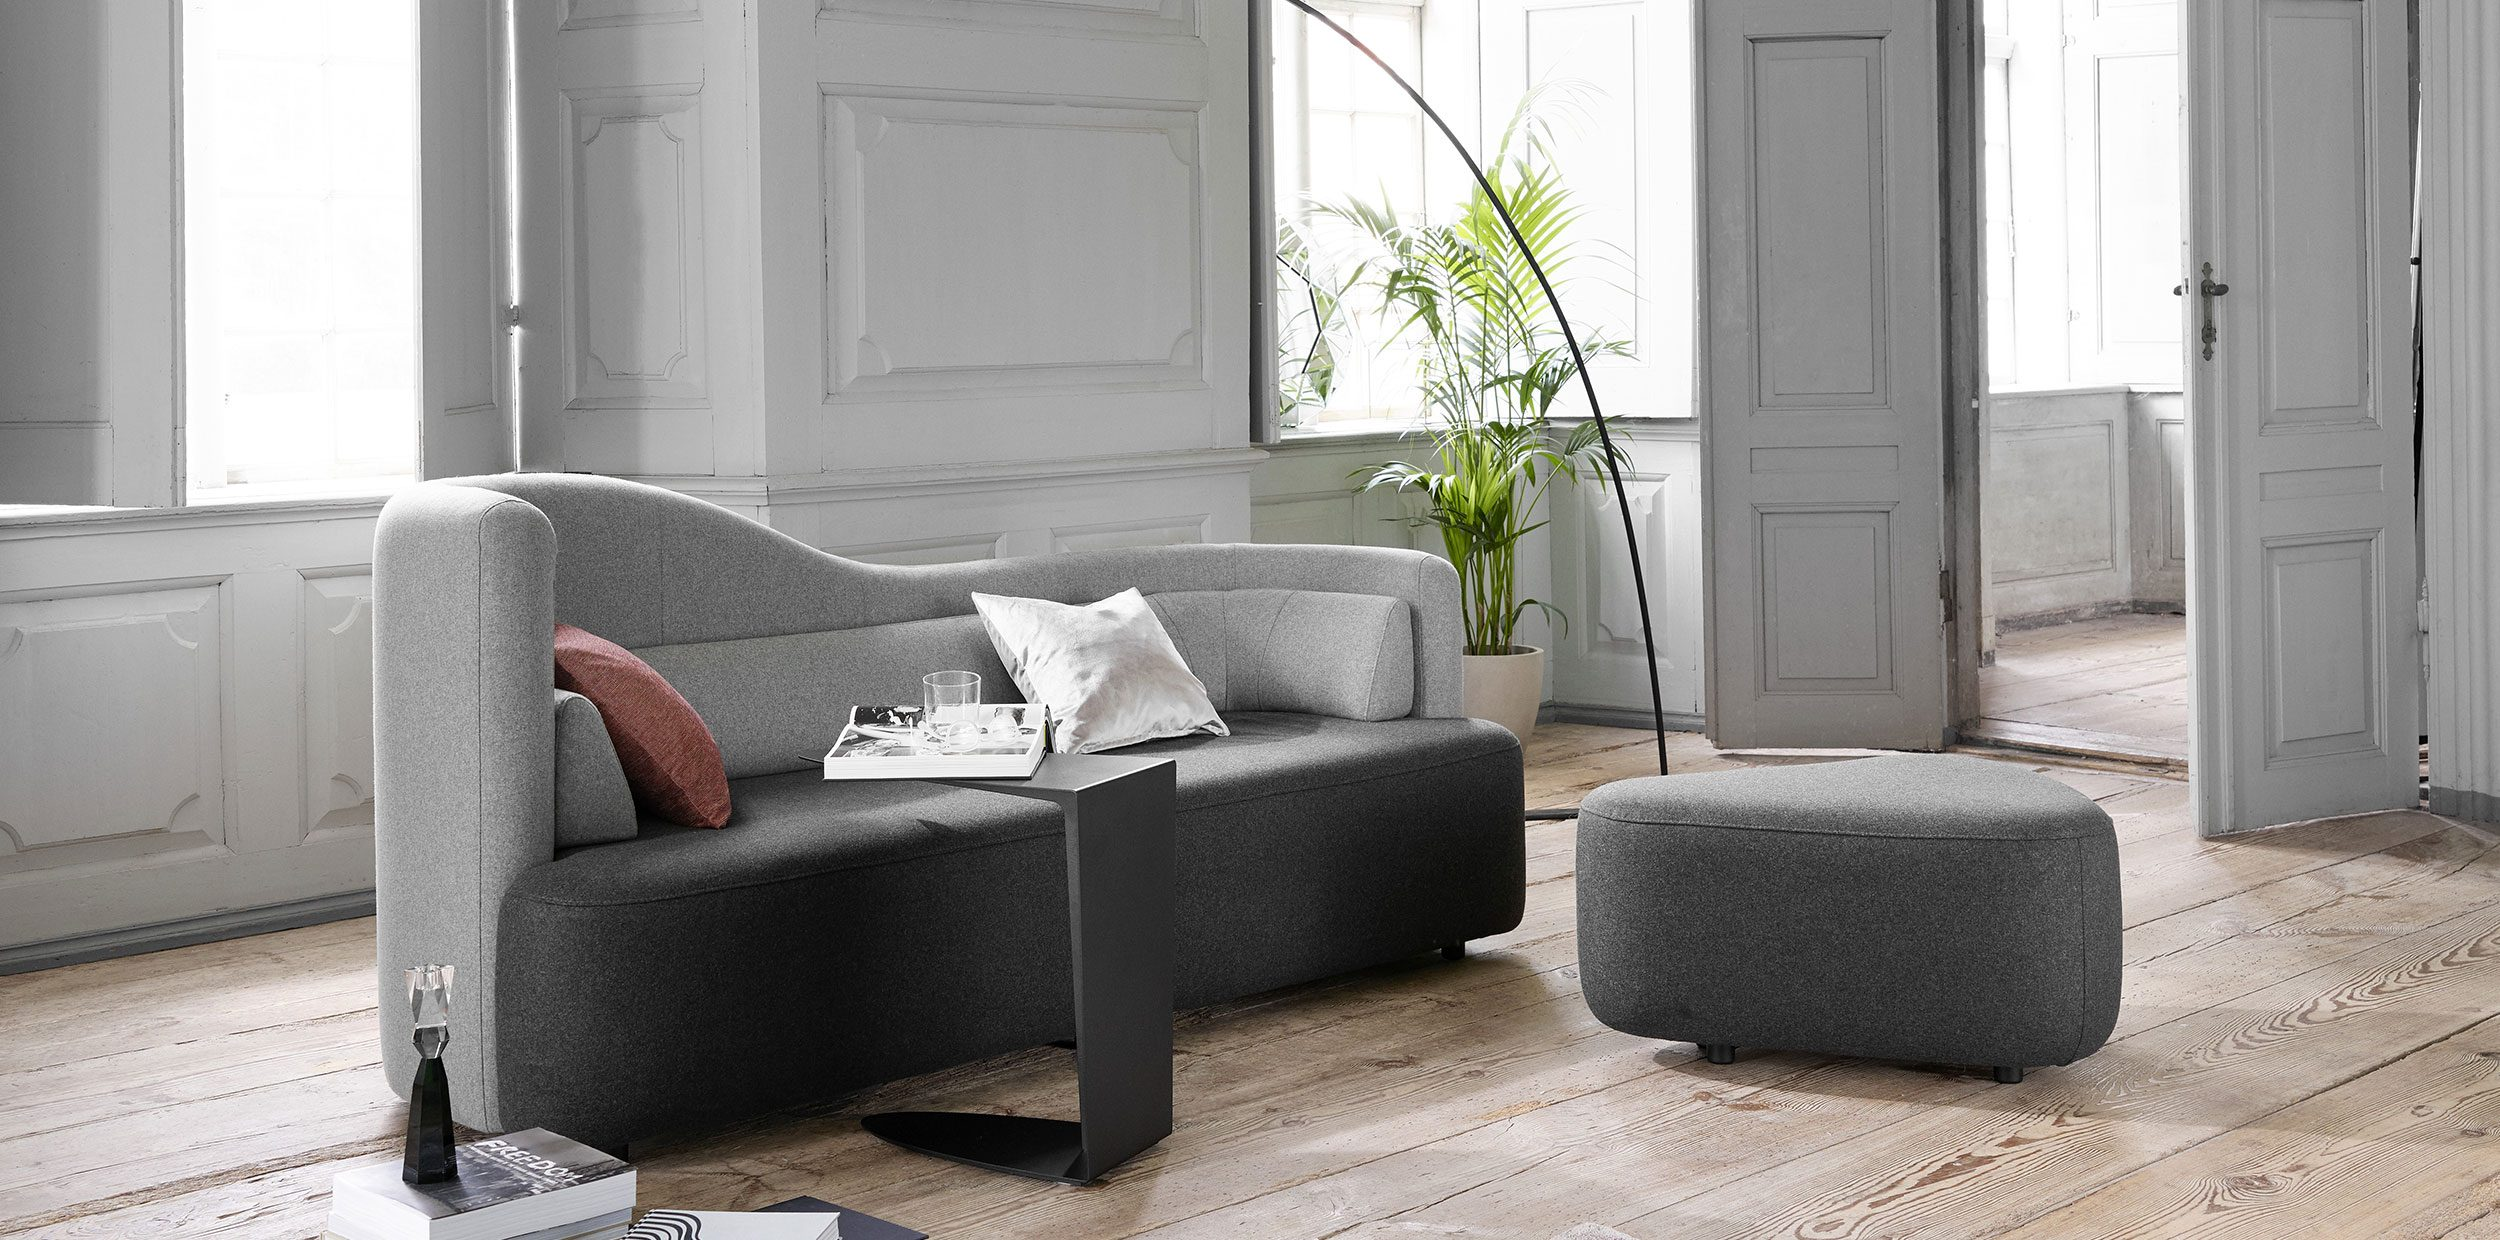 Two coloured Ottawa sofa in living room